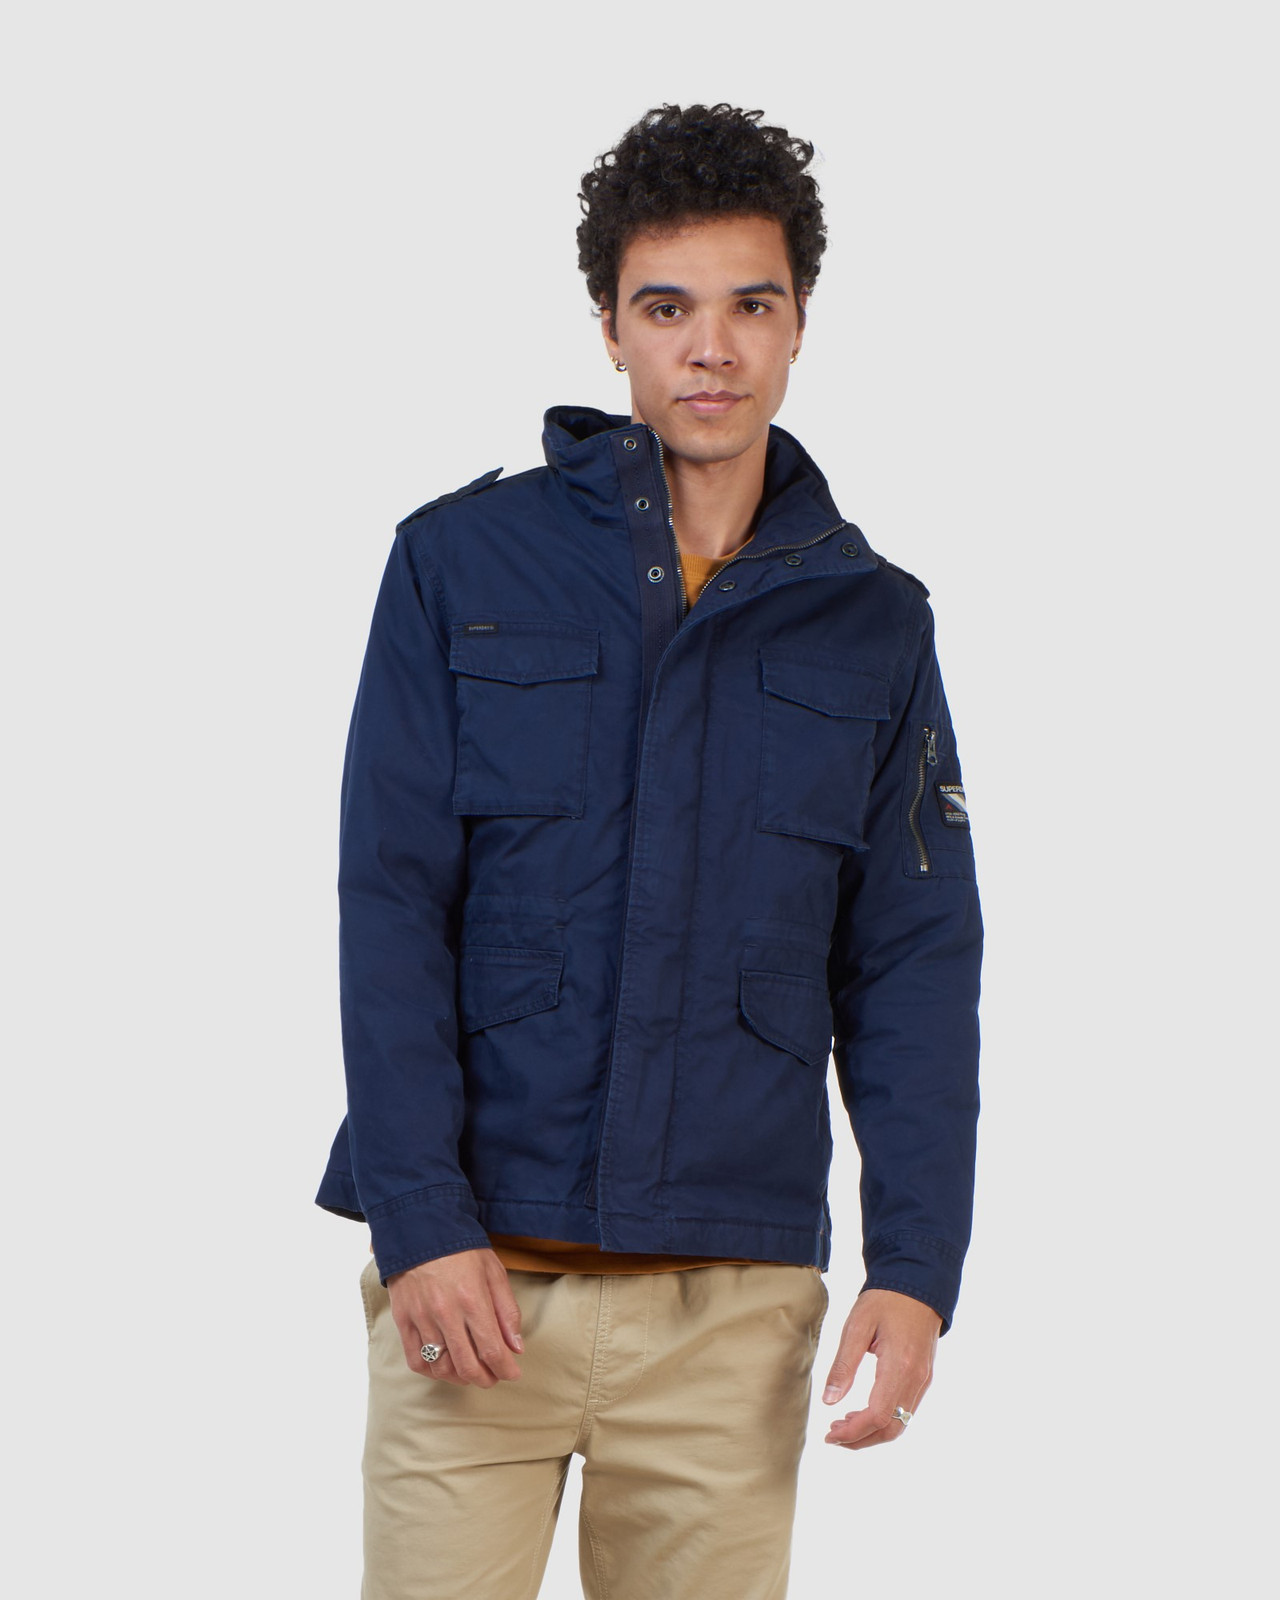 Superdry Mens CLASSIC RECRUIT JACKET Navy Military Jackets 10